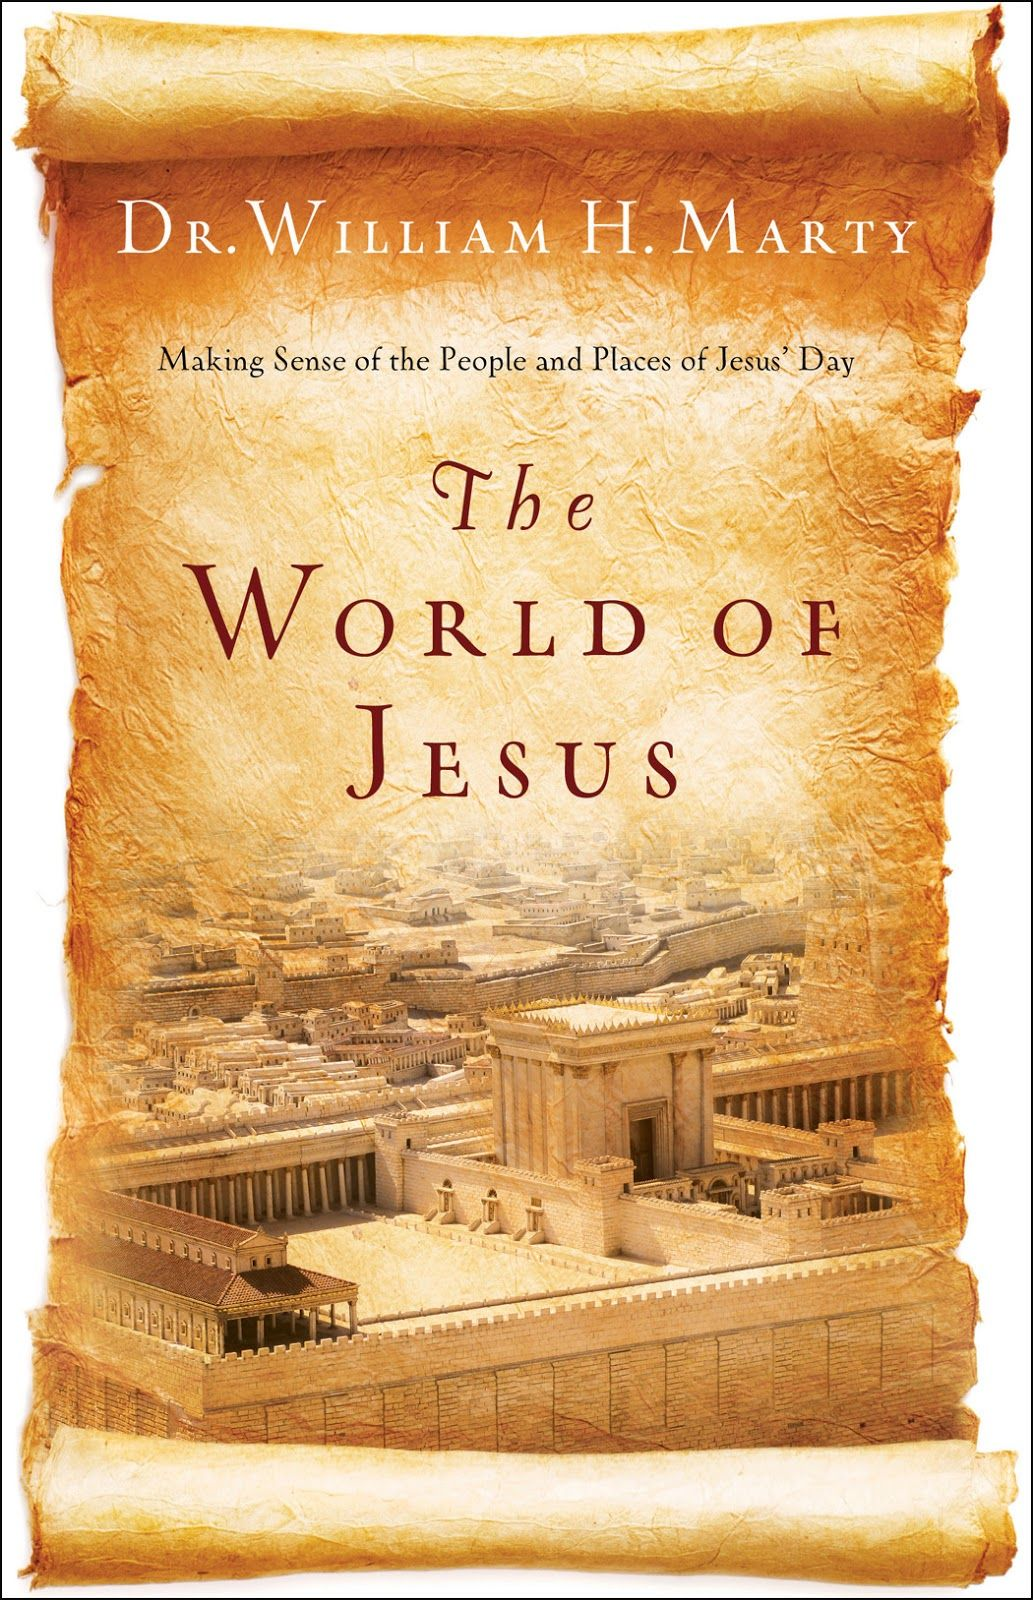 Thoughts on Books: The World of Jesus: Making Sense of the People and Places of Jesus' Day